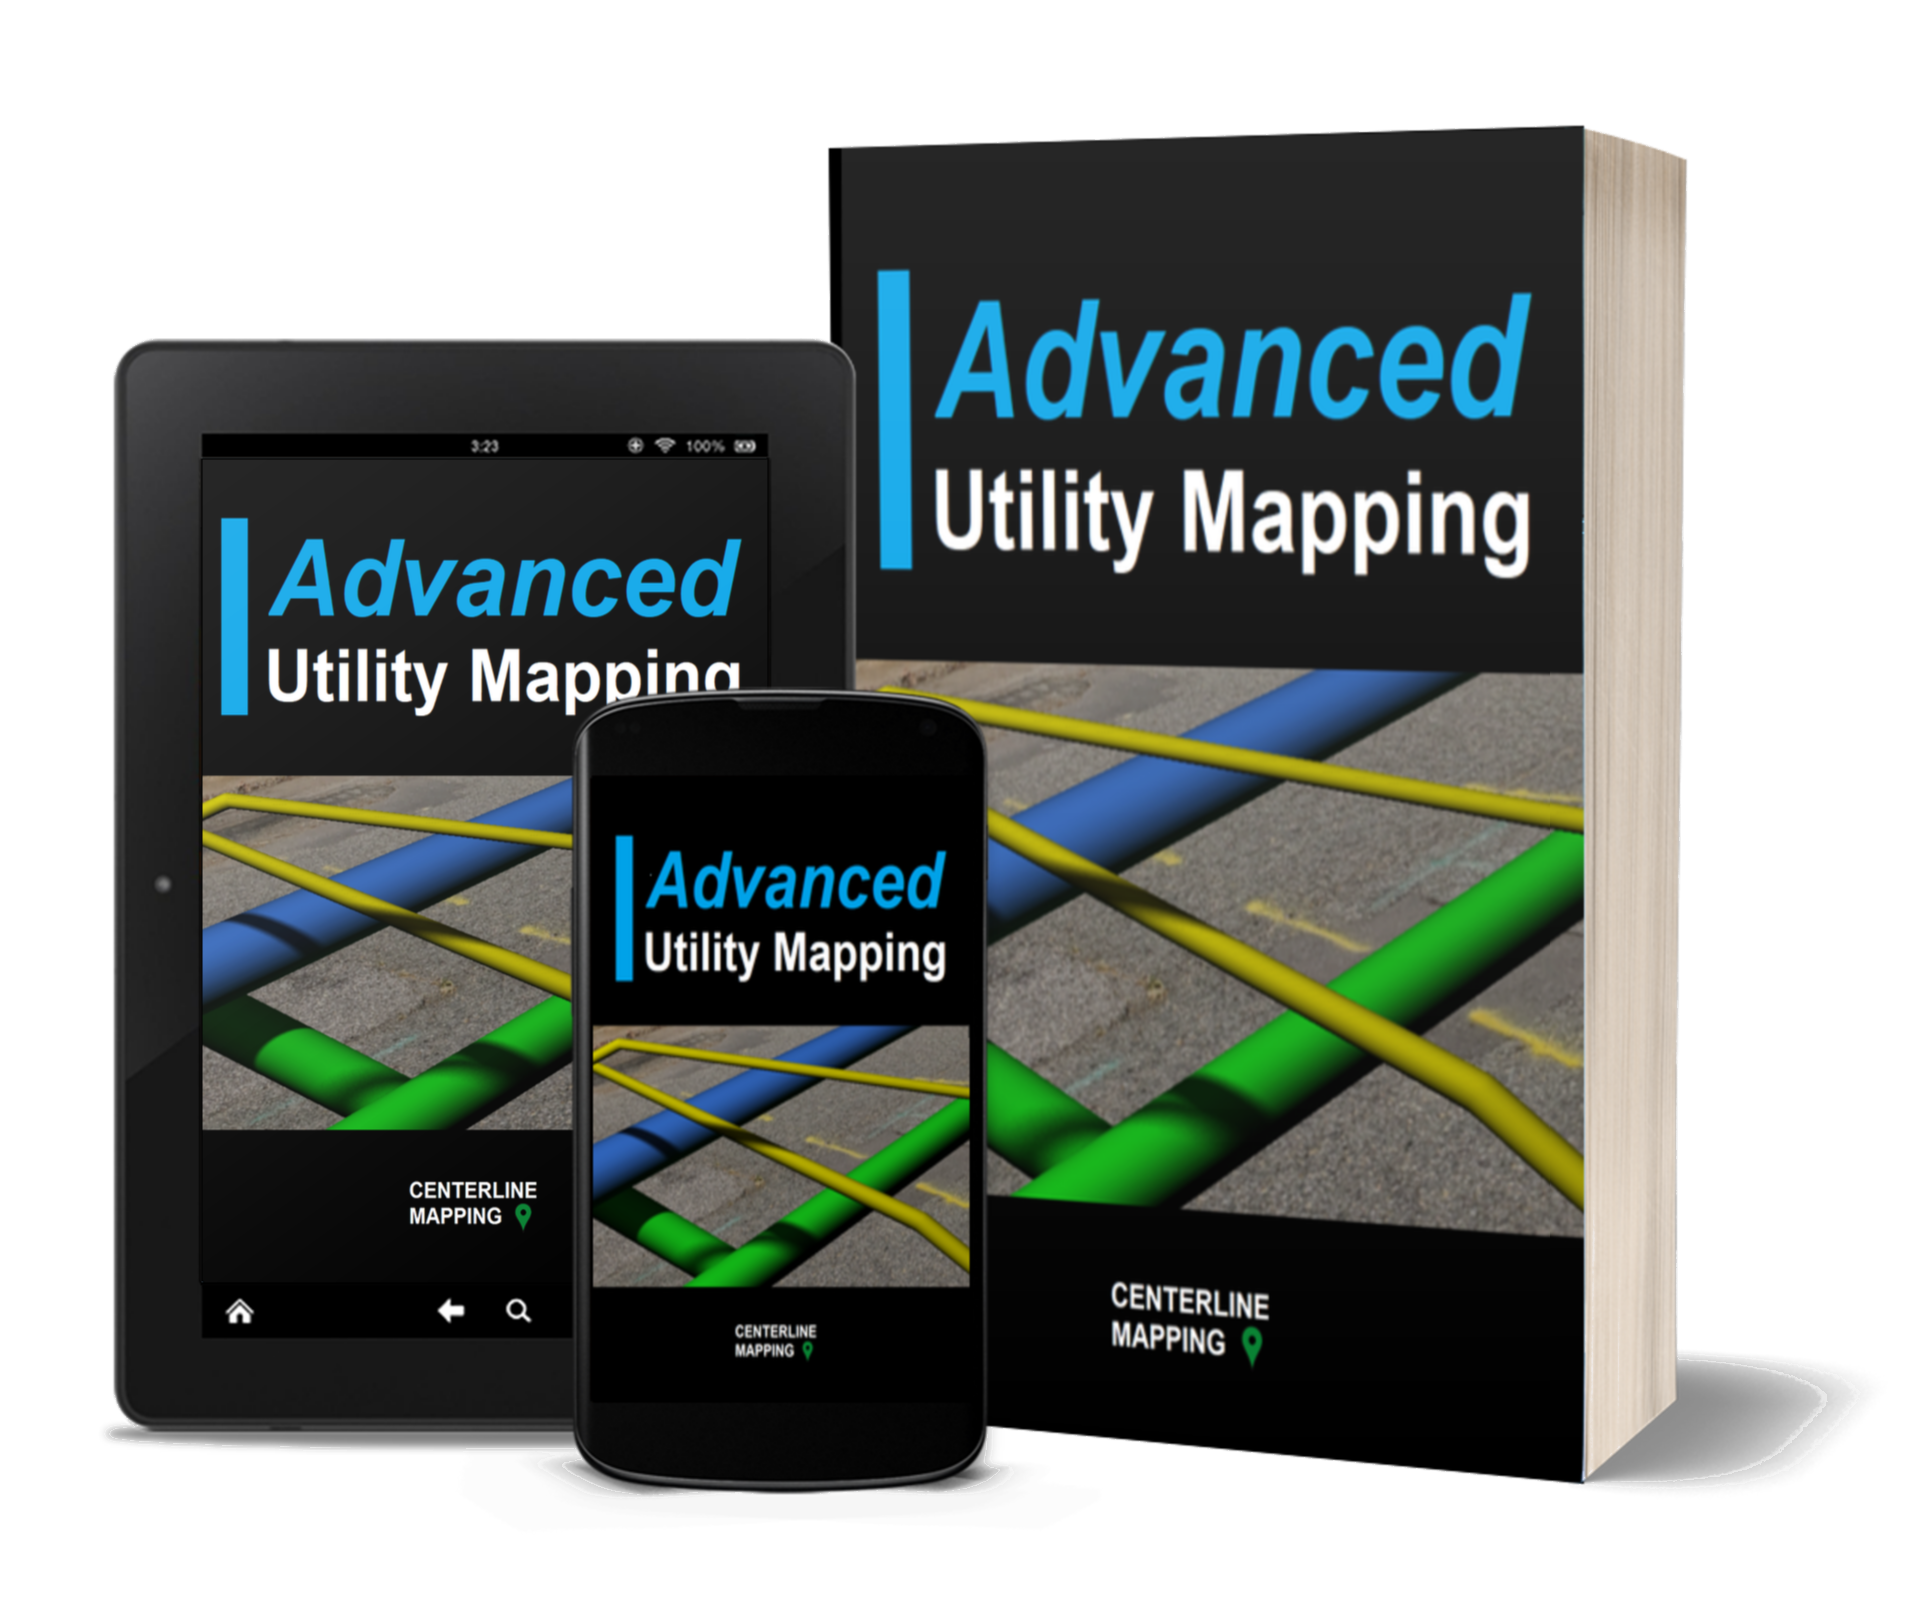 Advanced Utility Mapping